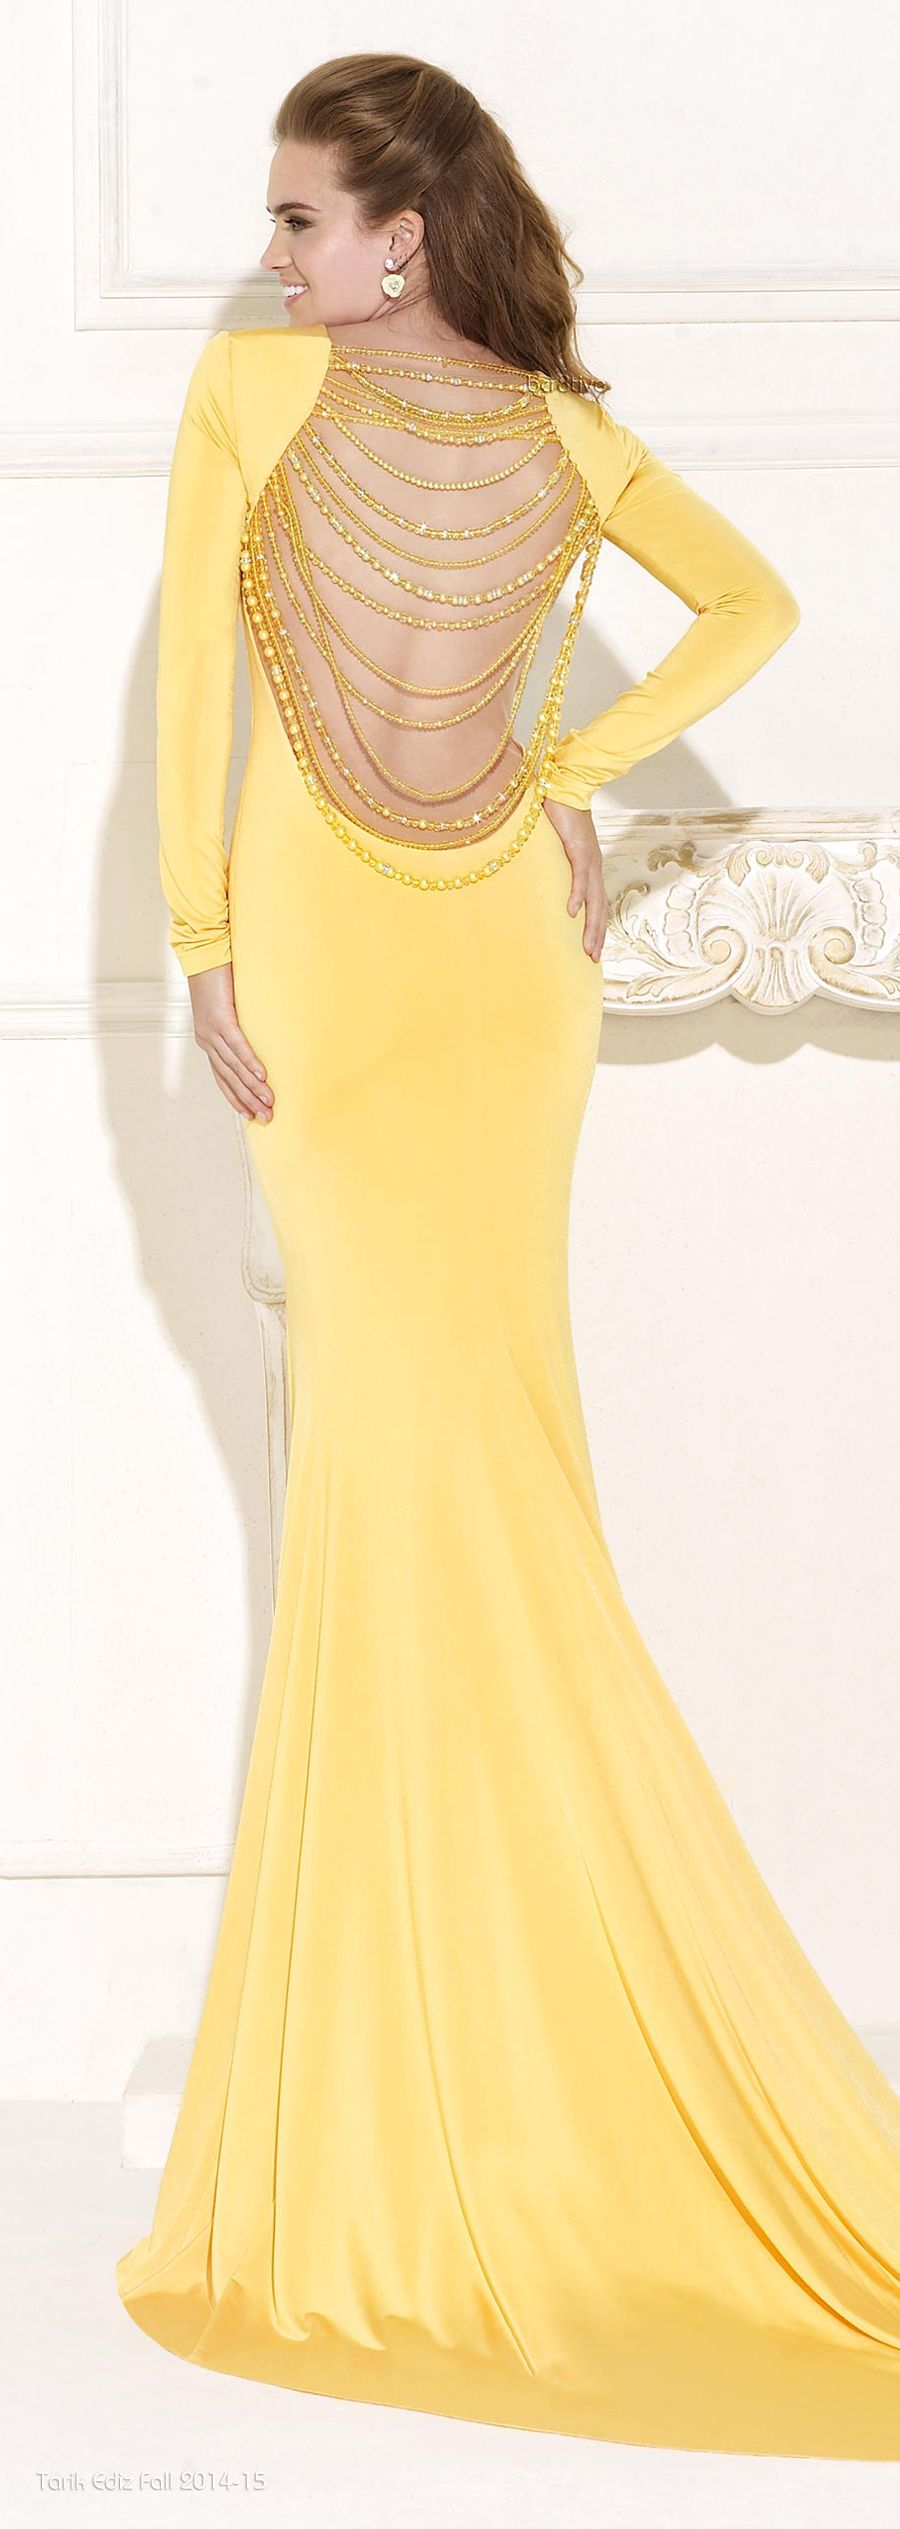 Espalda the yellow fashion pinterest lovely dresses uk